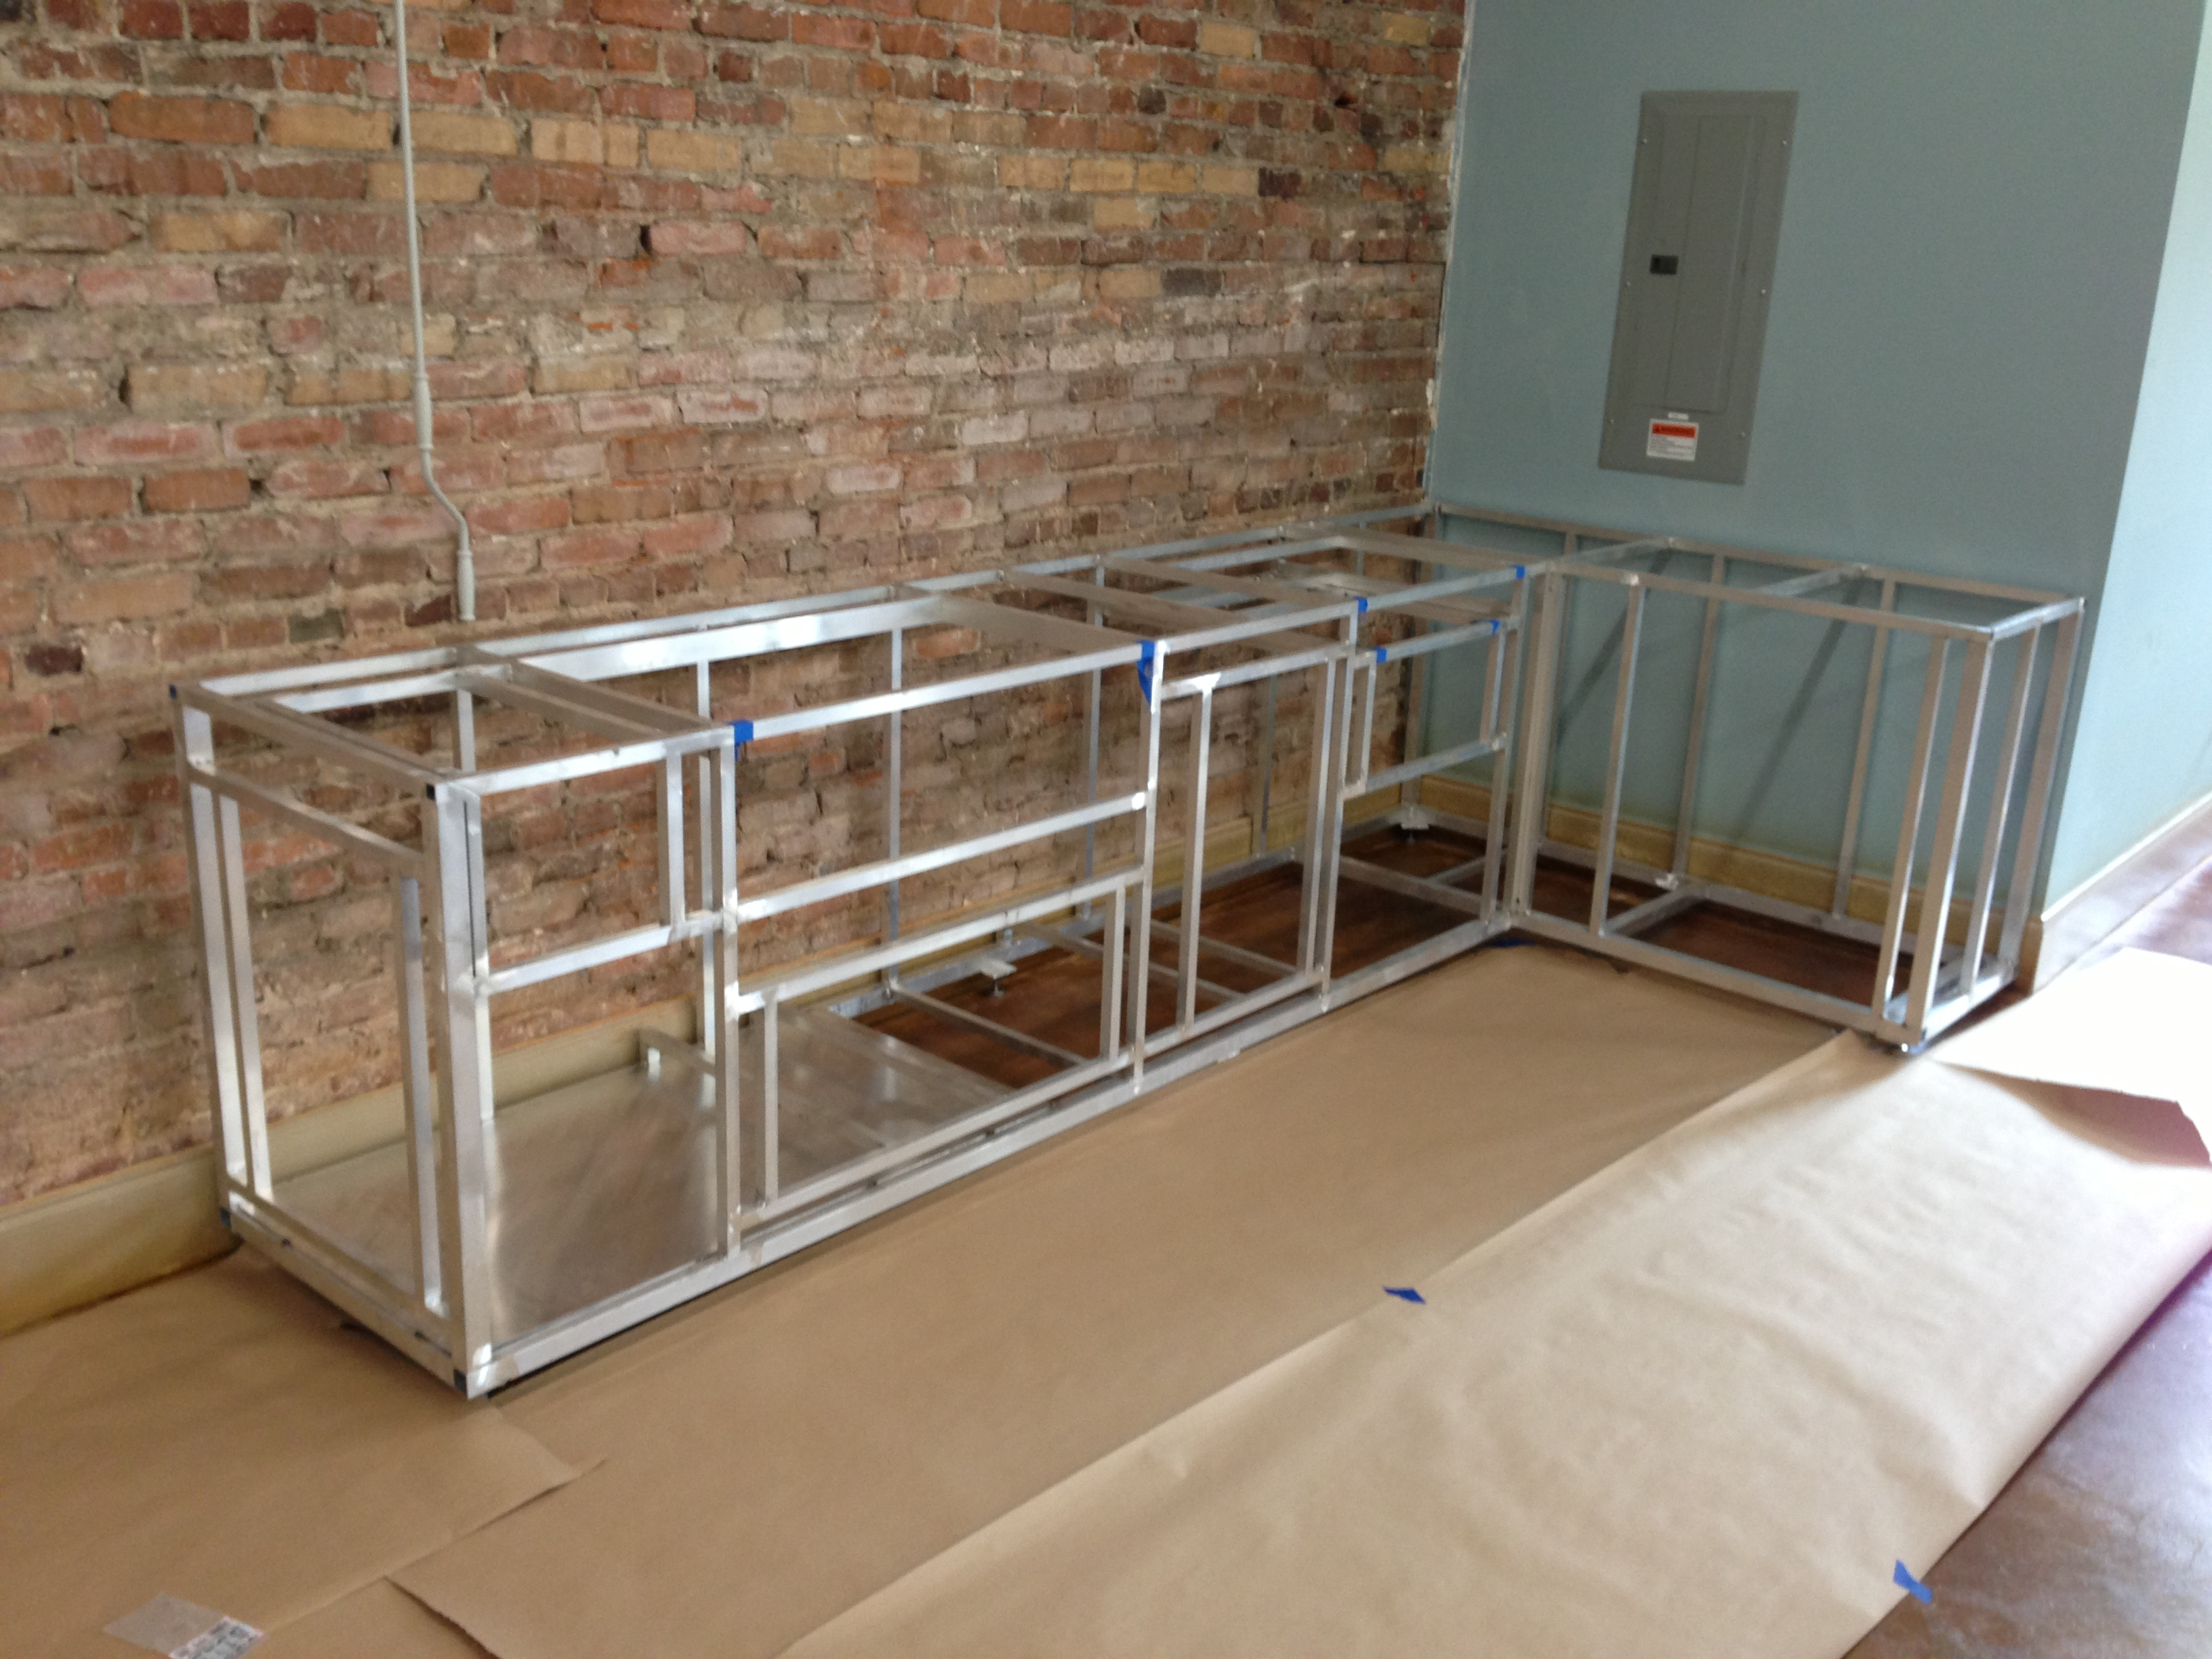 outdoor kitchen frame kit photo - 2